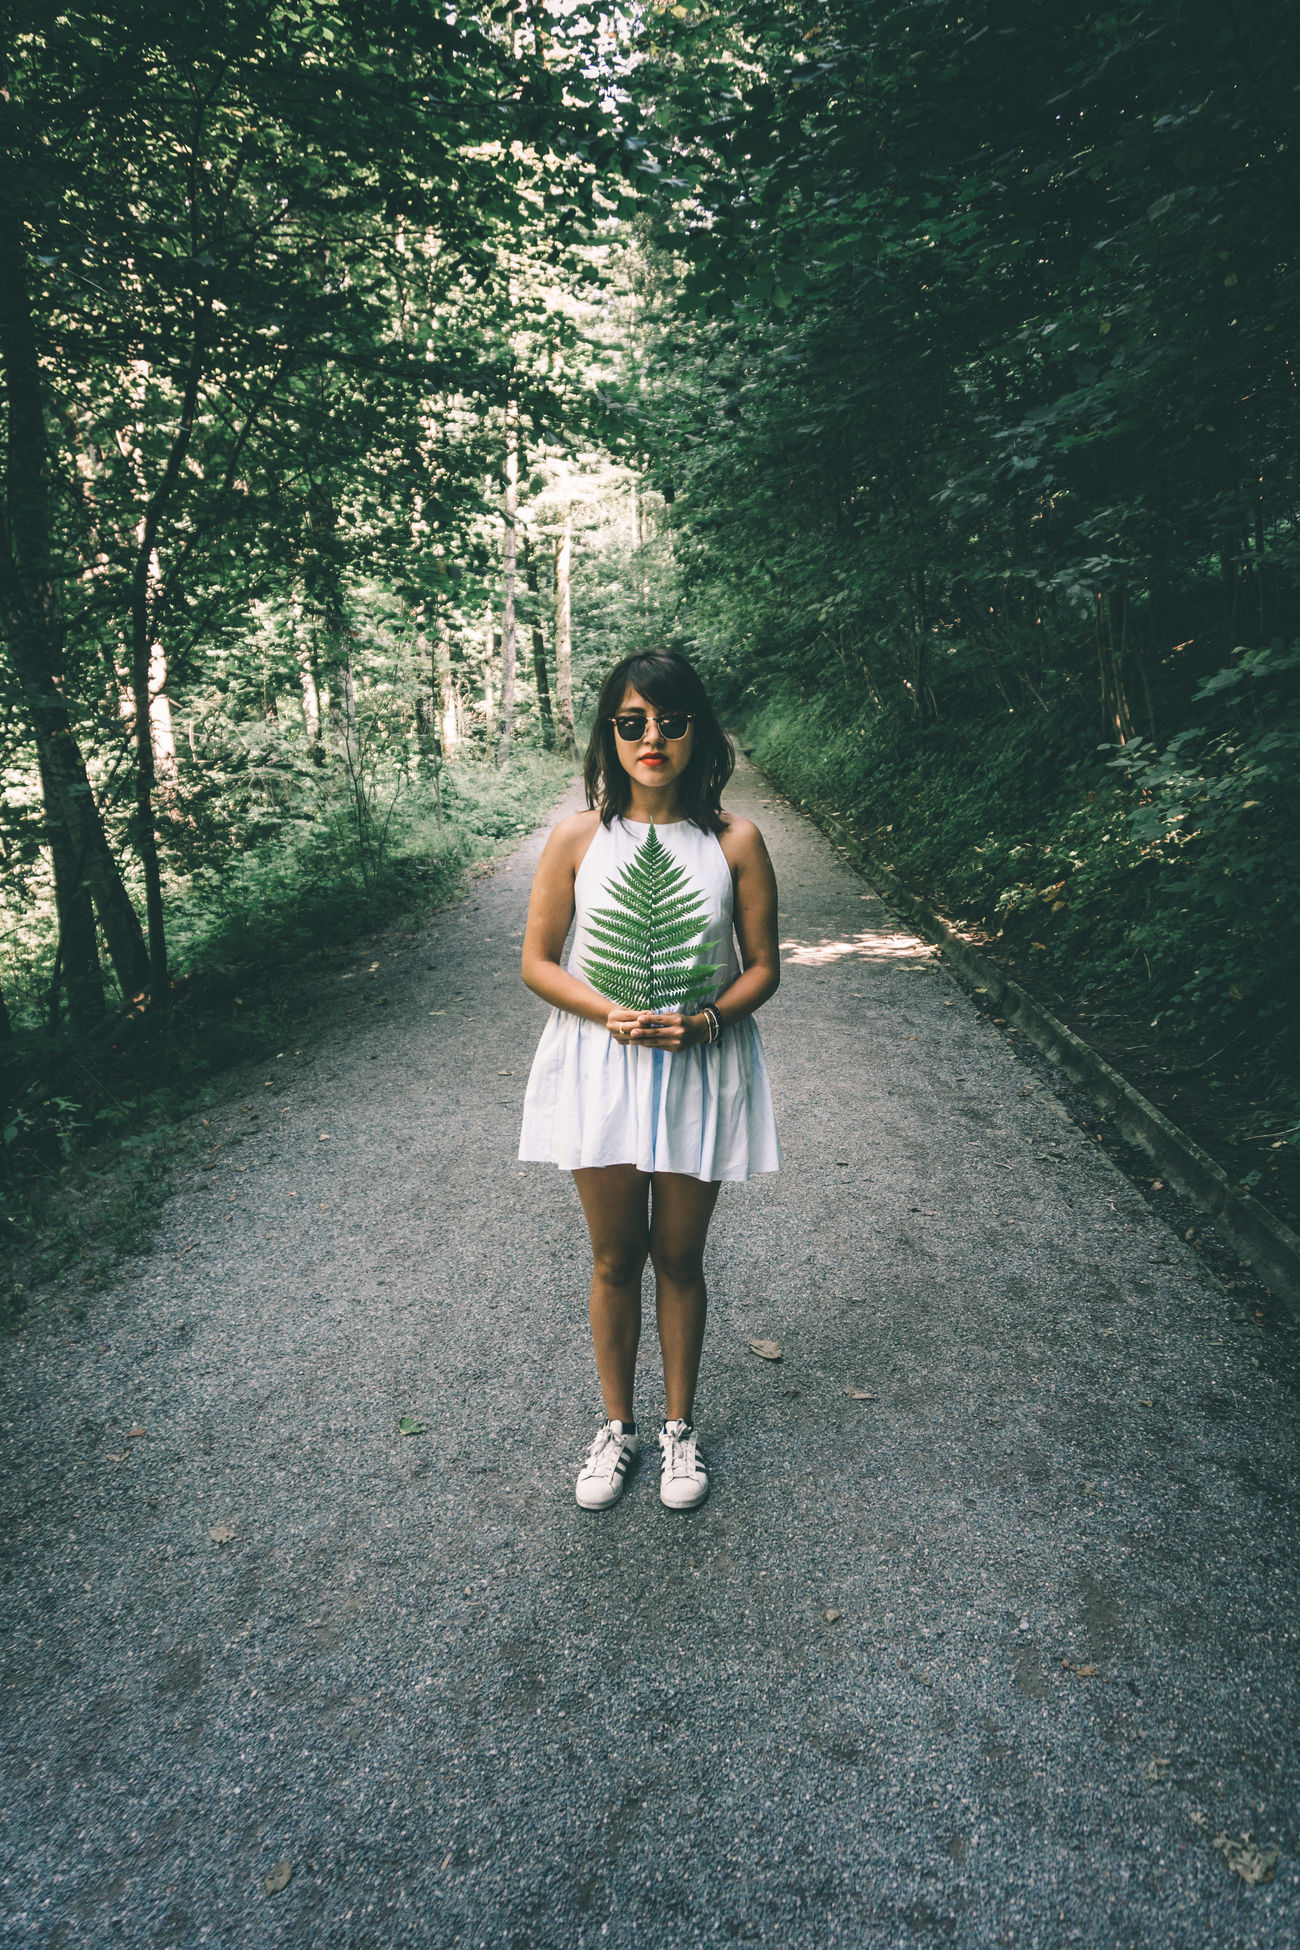 Girl in white dress standing in the forest under green trees Beauty Beauty In Nature Cute Cute Girl Fashion Fern Folk Forest Girl Girl Power Hipstamatic Leaf Looking At Camera Lovely Model Modeling Nature One Person Portrait Pure Purity Style White Dress Woods Young Adult The Portraitist - 2017 EyeEm Awards